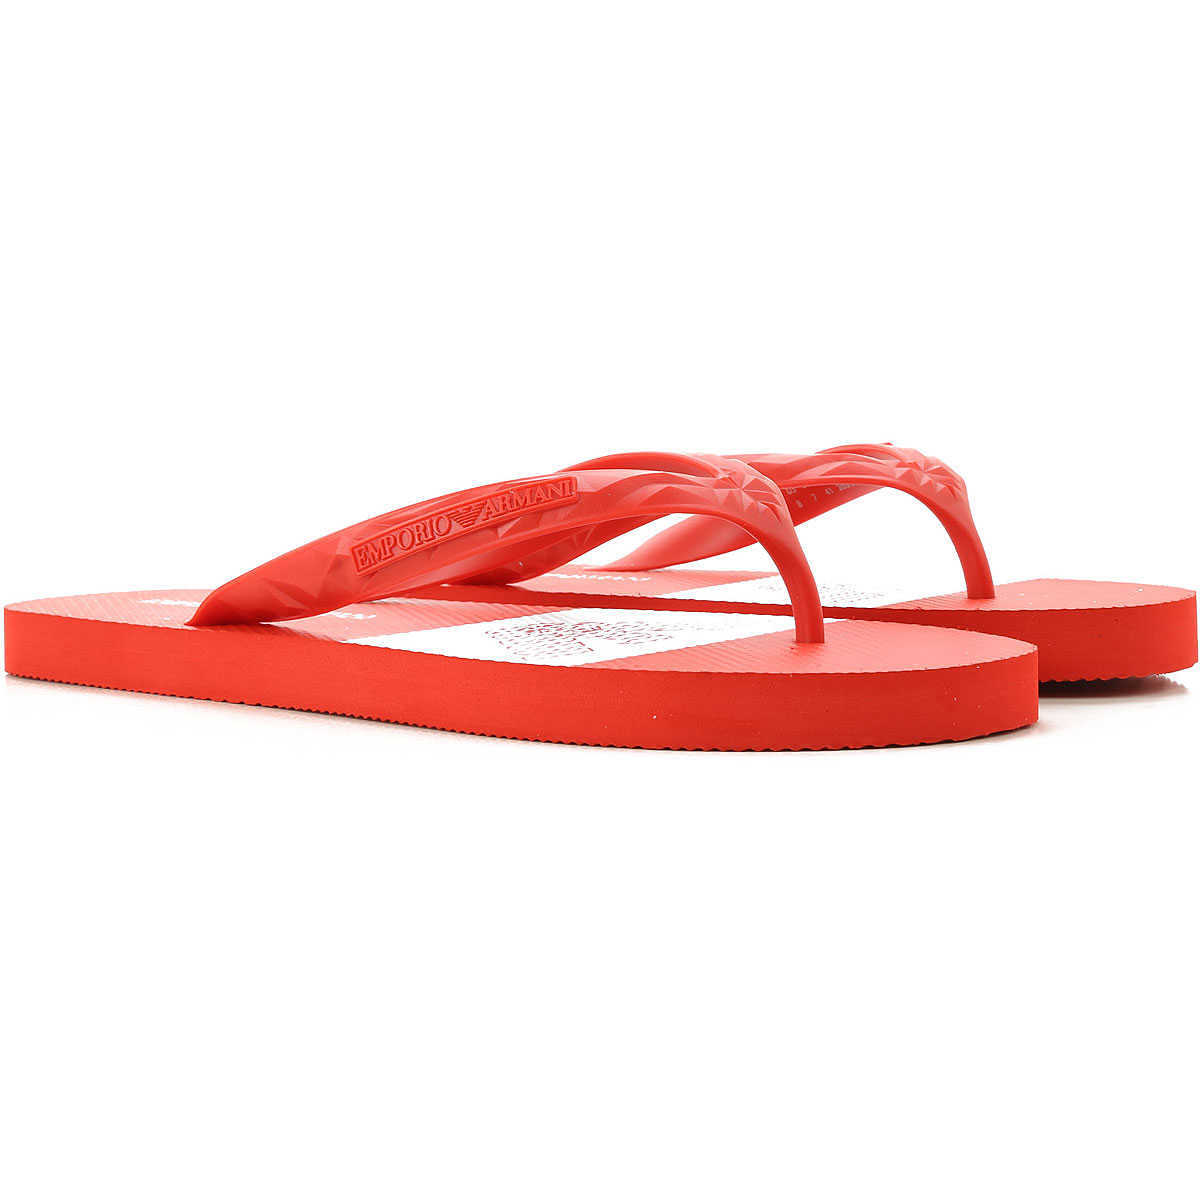 Emporio Armani Flip Flops for Men Red Canada - GOOFASH - Mens SLIPPERS